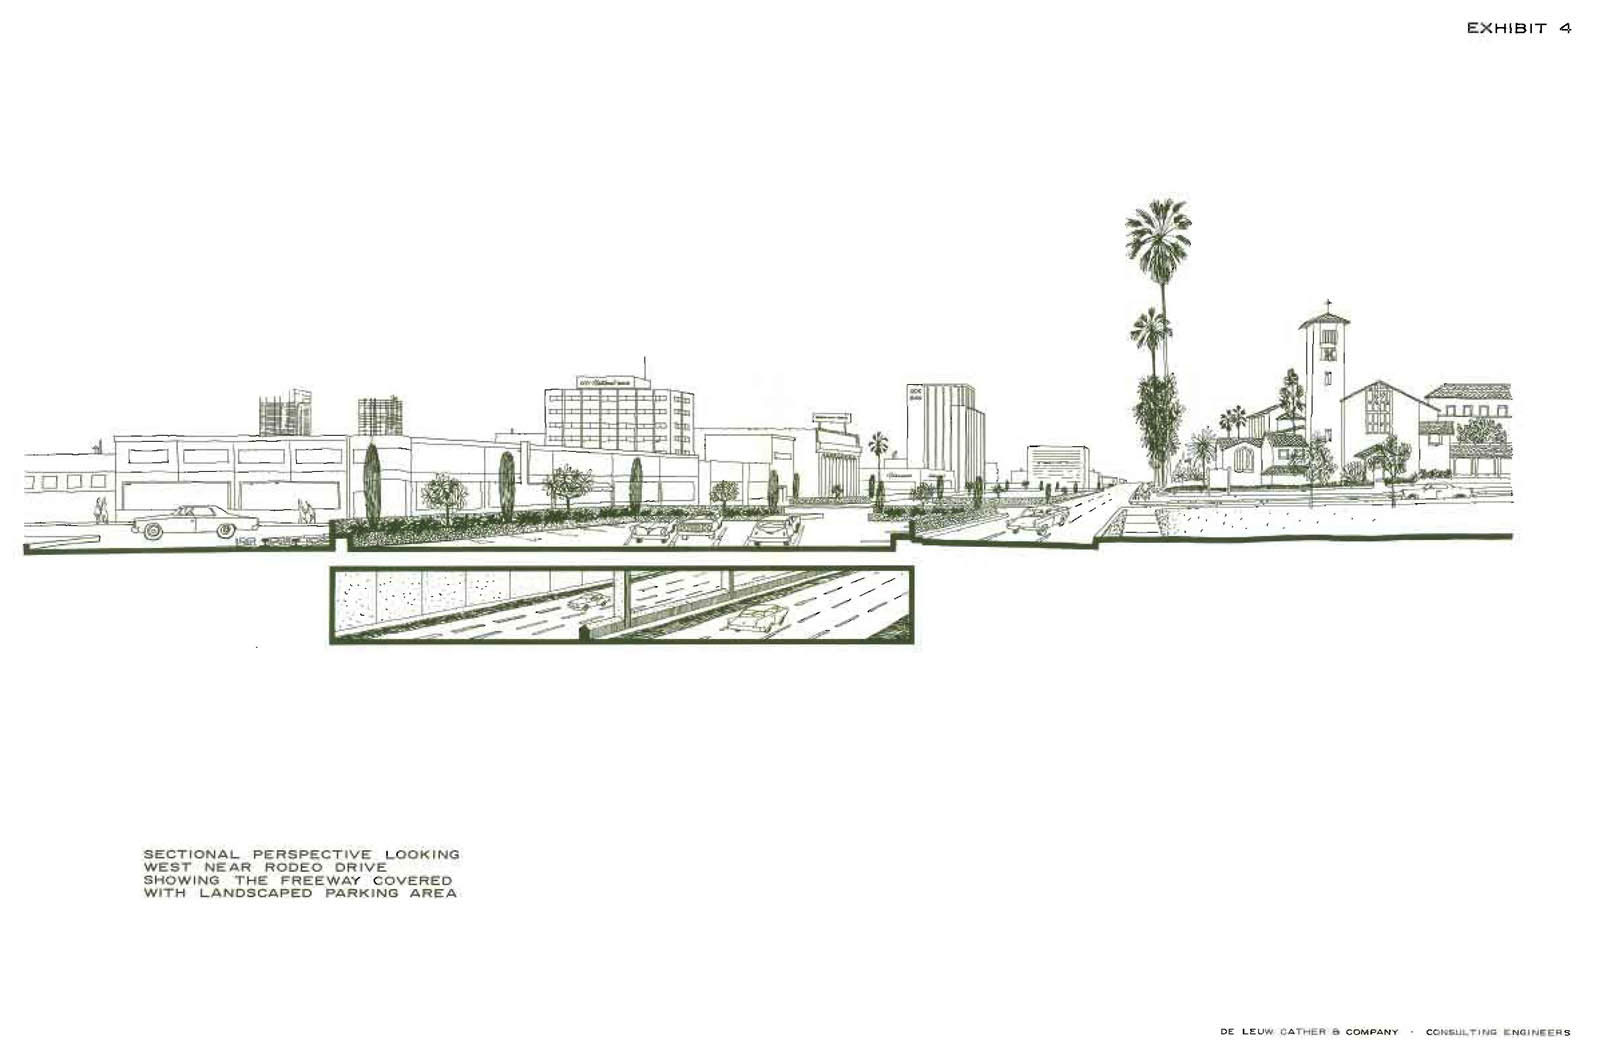 From the 'Report on Geometric Design Proposed Beverly Hills Freeway for Beverly Hills City Council' by De Leuw, Cather & Company, 1964. Courtesy of the Metro Transportation Library and Archive.